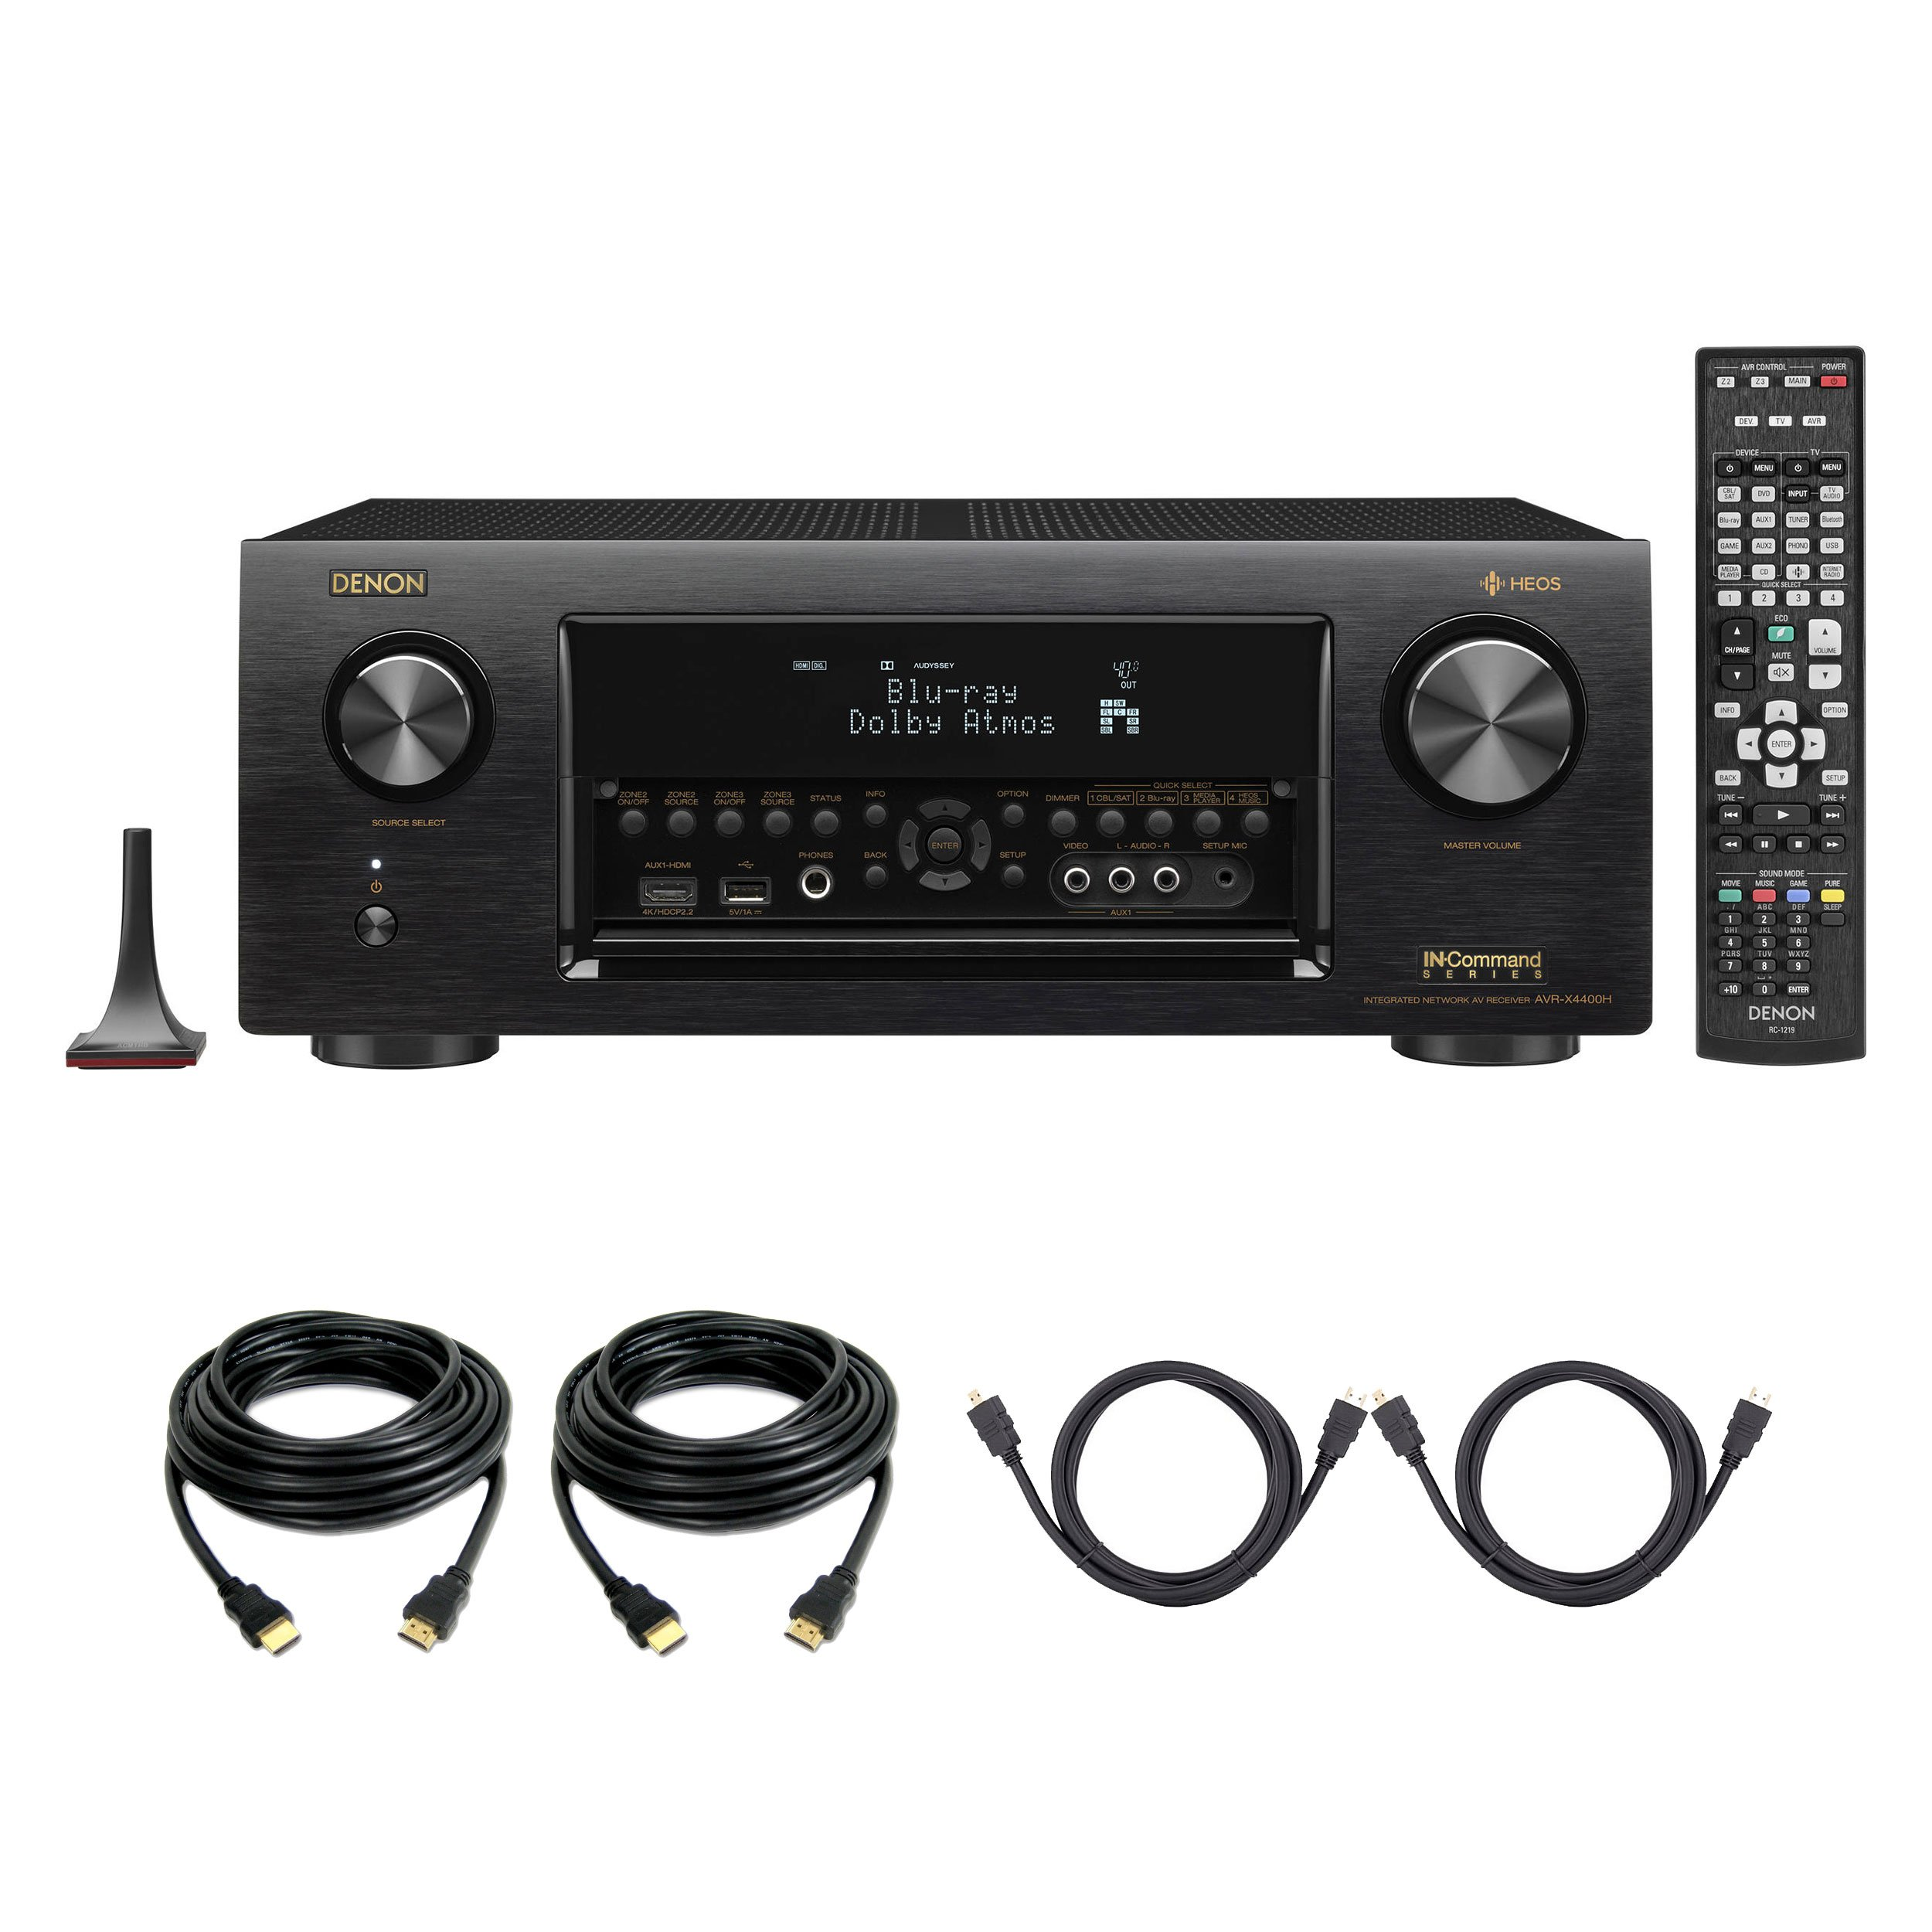 Denon AVR-X4400H Dolby Atmos, 9.2 Network ,Bluetooth,WiFi, AirPlay 4K Ultra HD In-Command AV Receiver with HEOS Technology with 4 HDMI Cables by Denon